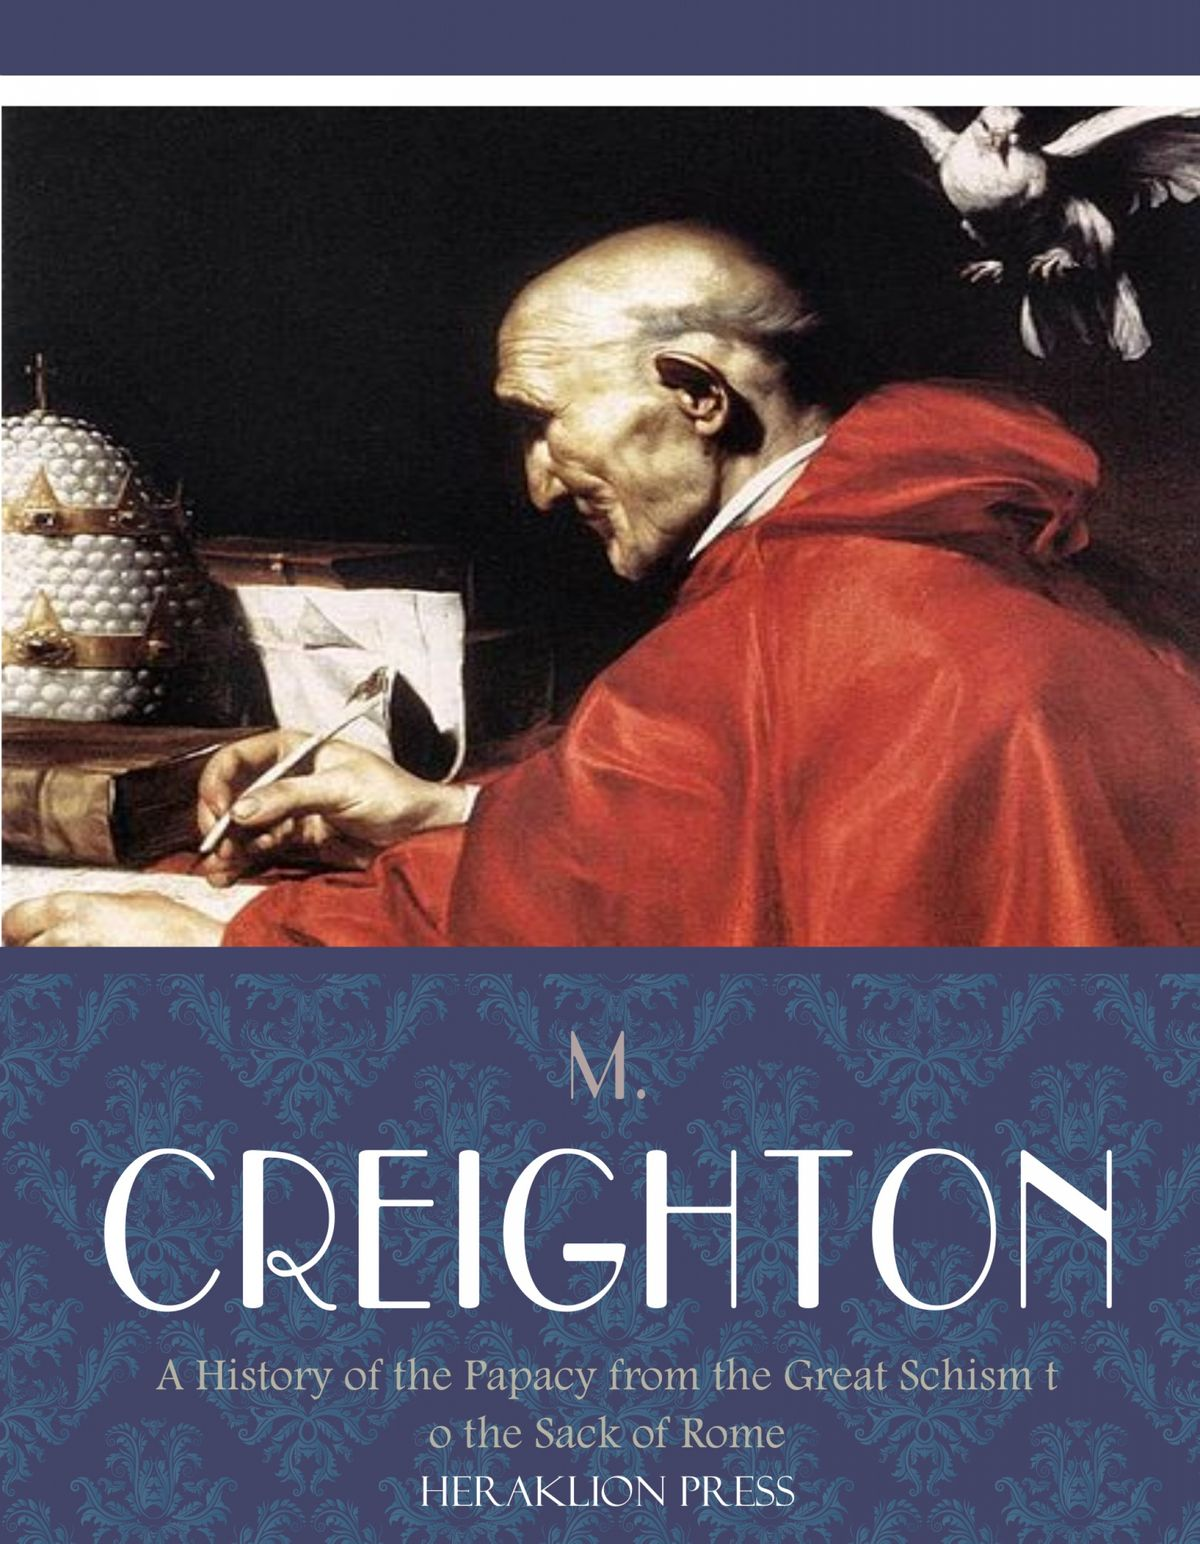 More Books by M. Creighton